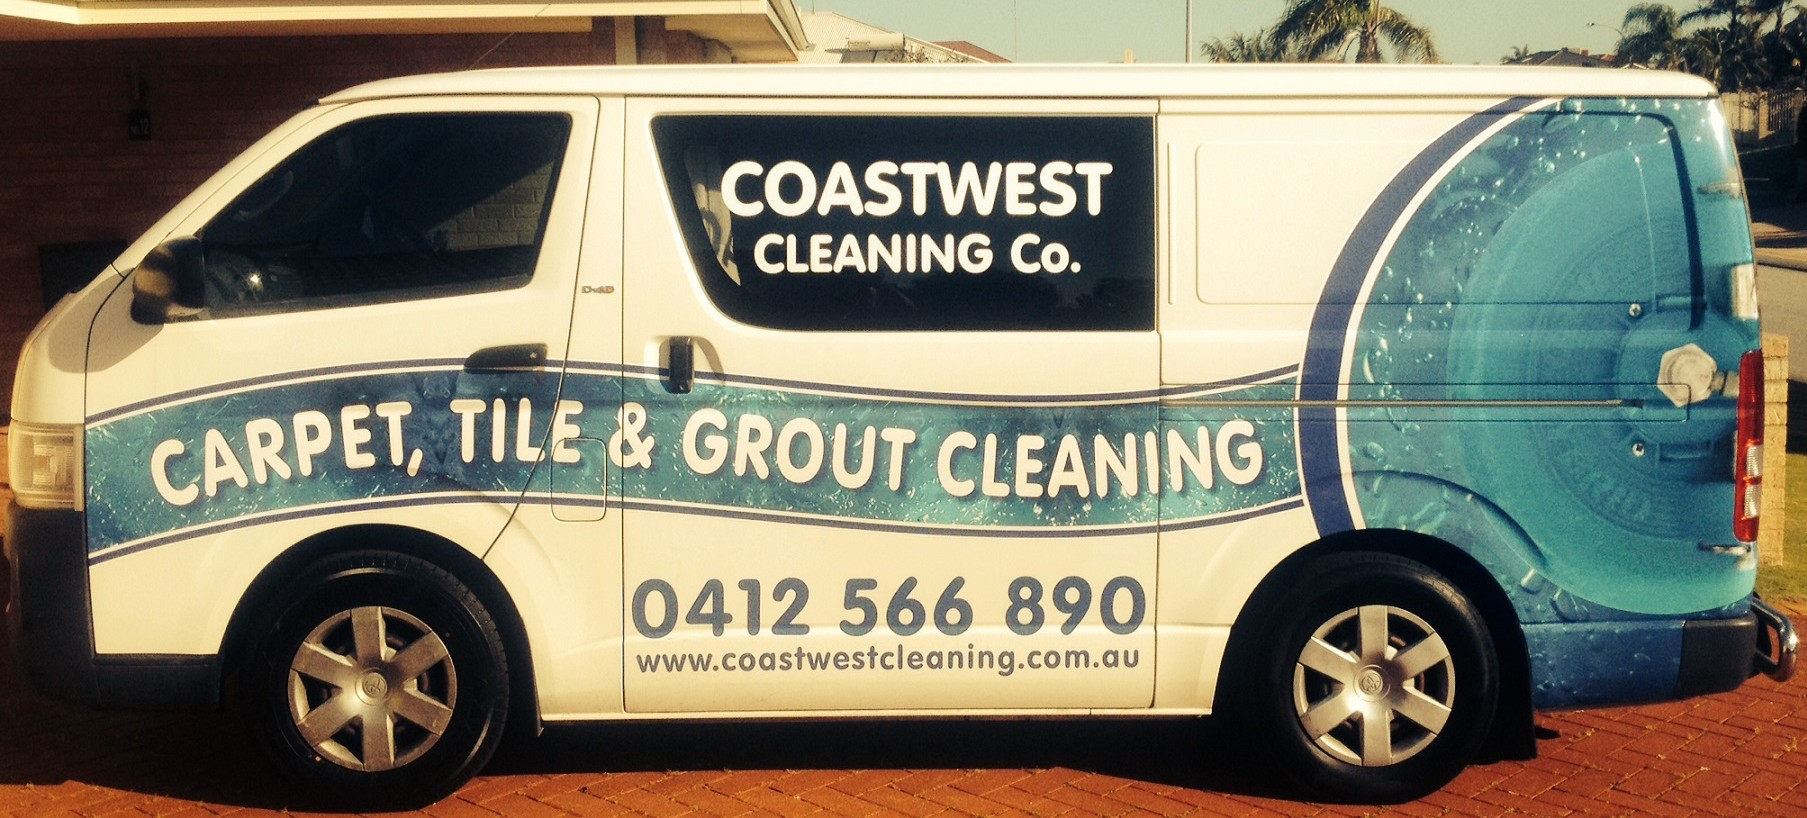 Coastwest Cleaning, Carpet Tile and Grout Cleaning